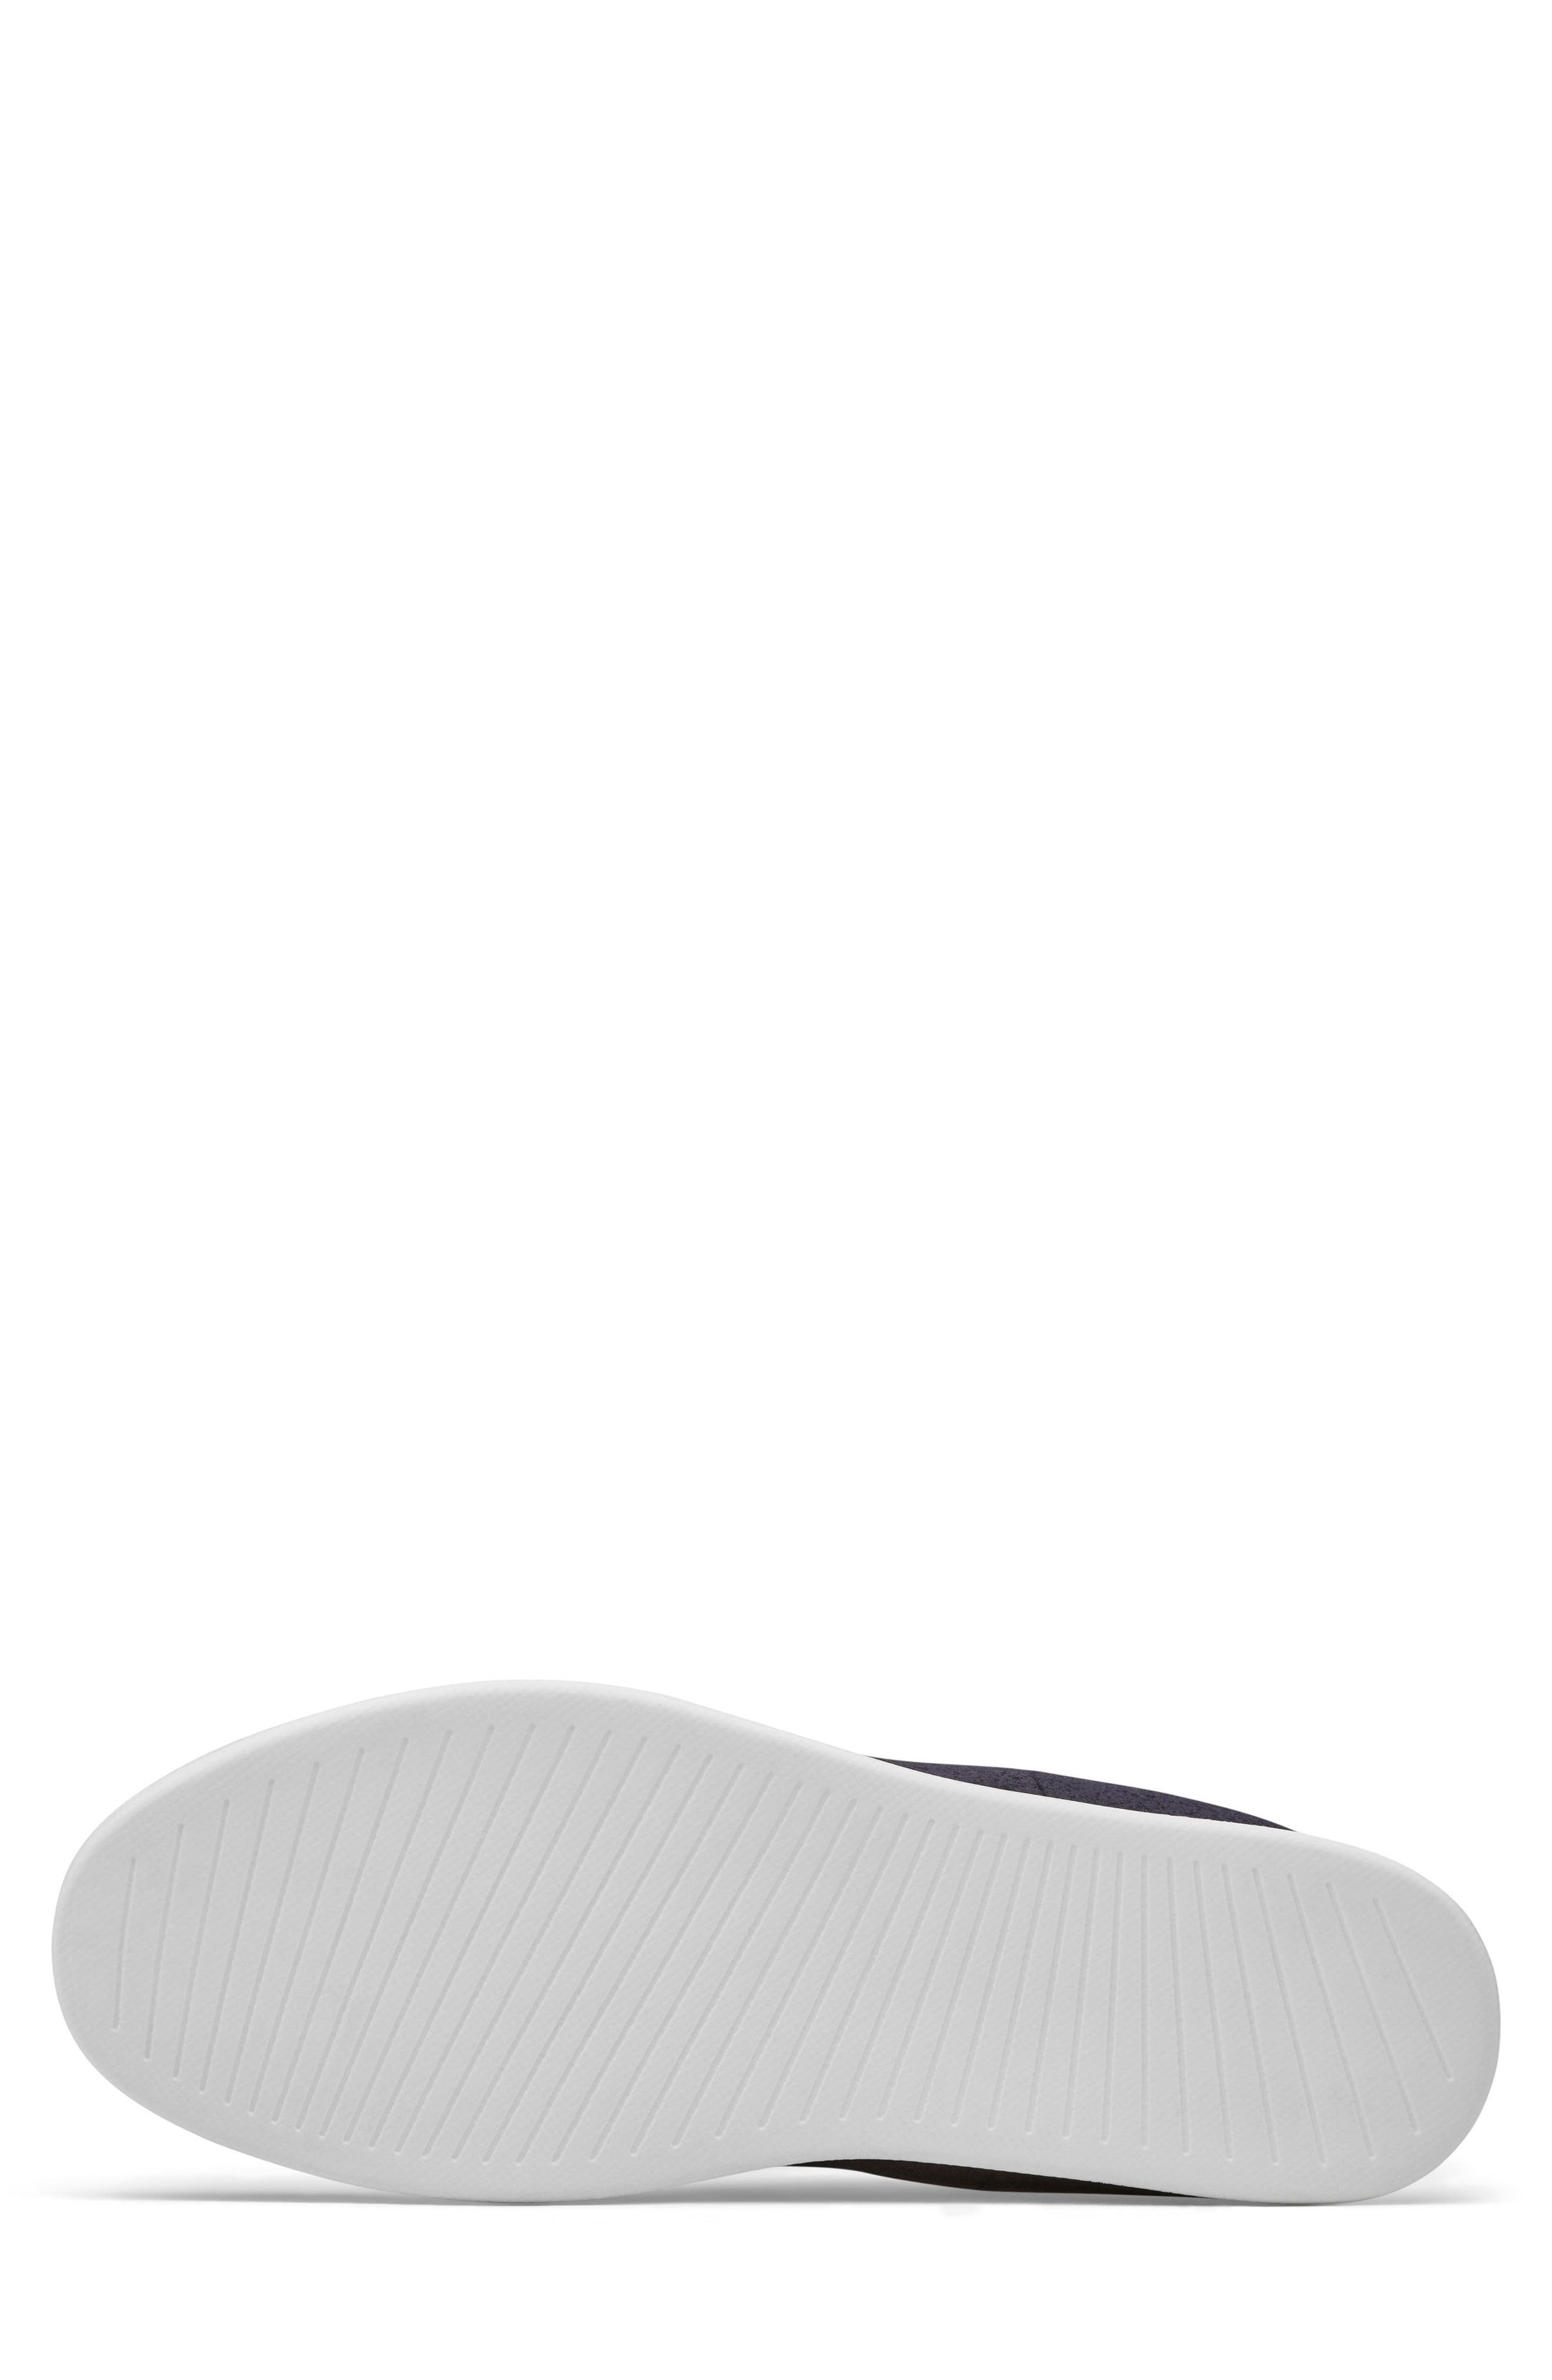 Wool Lounger,                             Alternate thumbnail 5, color,                             Midnight